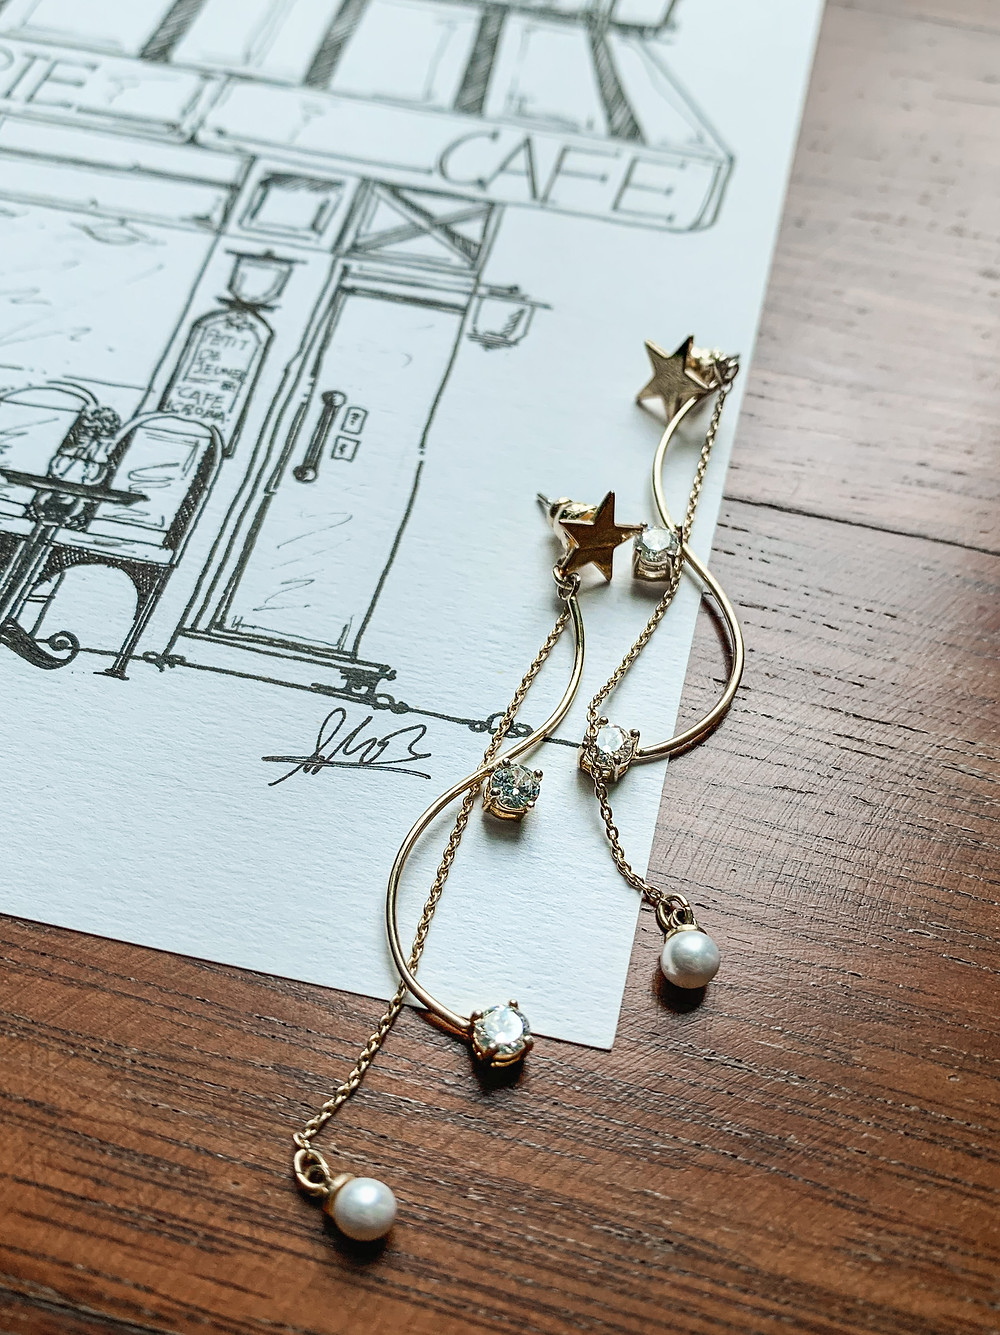 Joli Moon gold star and pearl drop earrings atop ink illustration of a cafe.